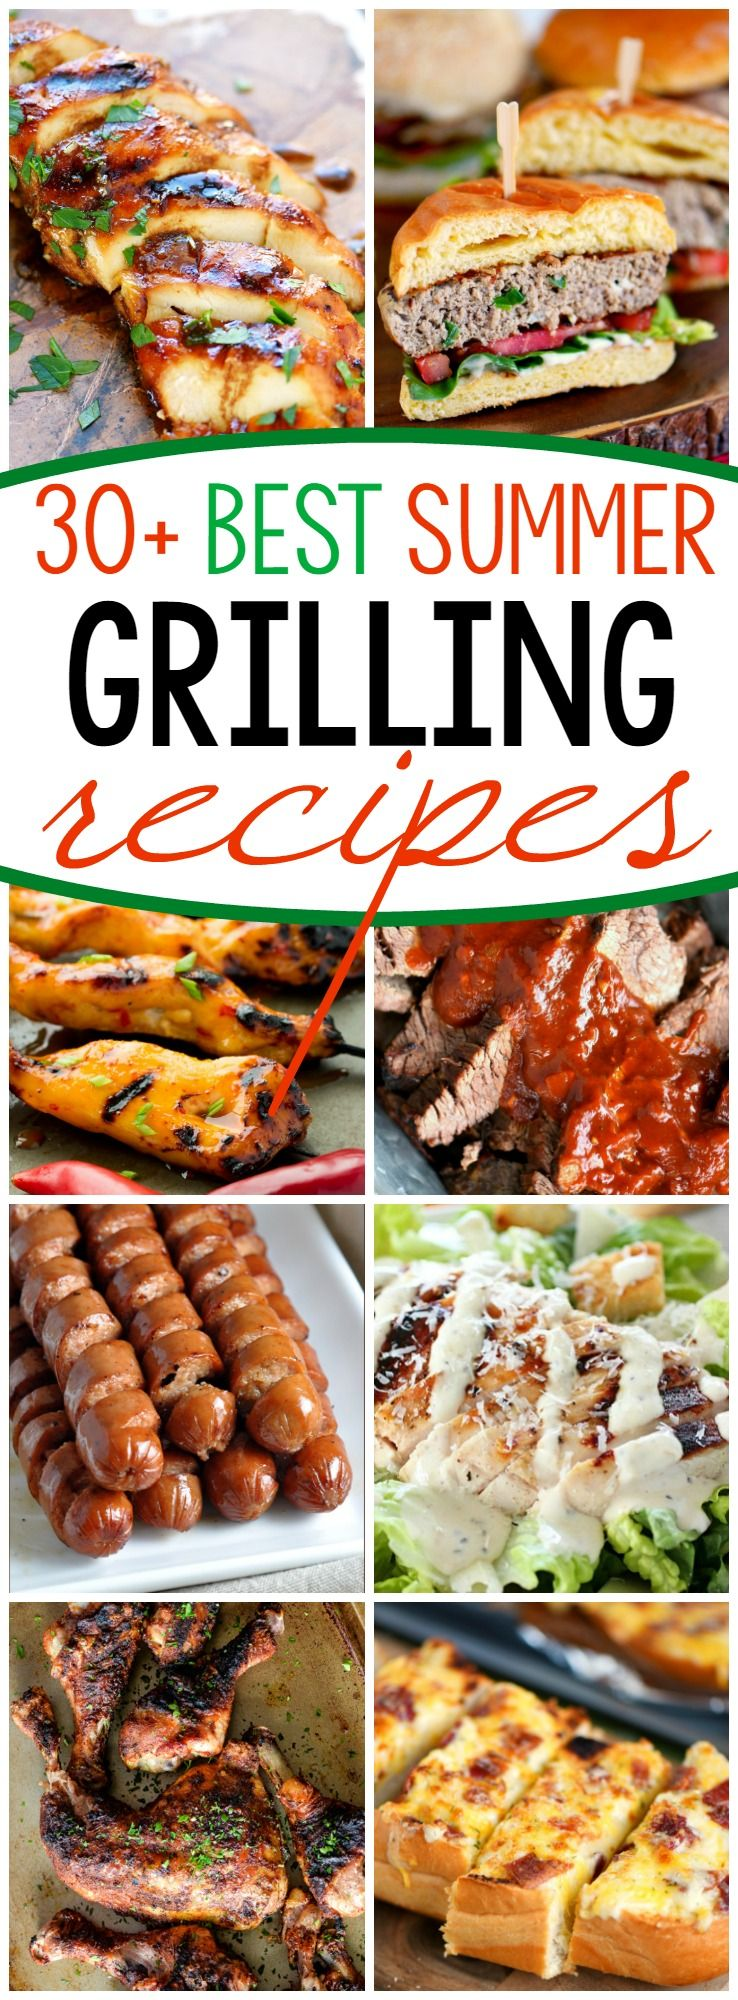 31 grilling recipes for summer grilling recipes grilling and summer